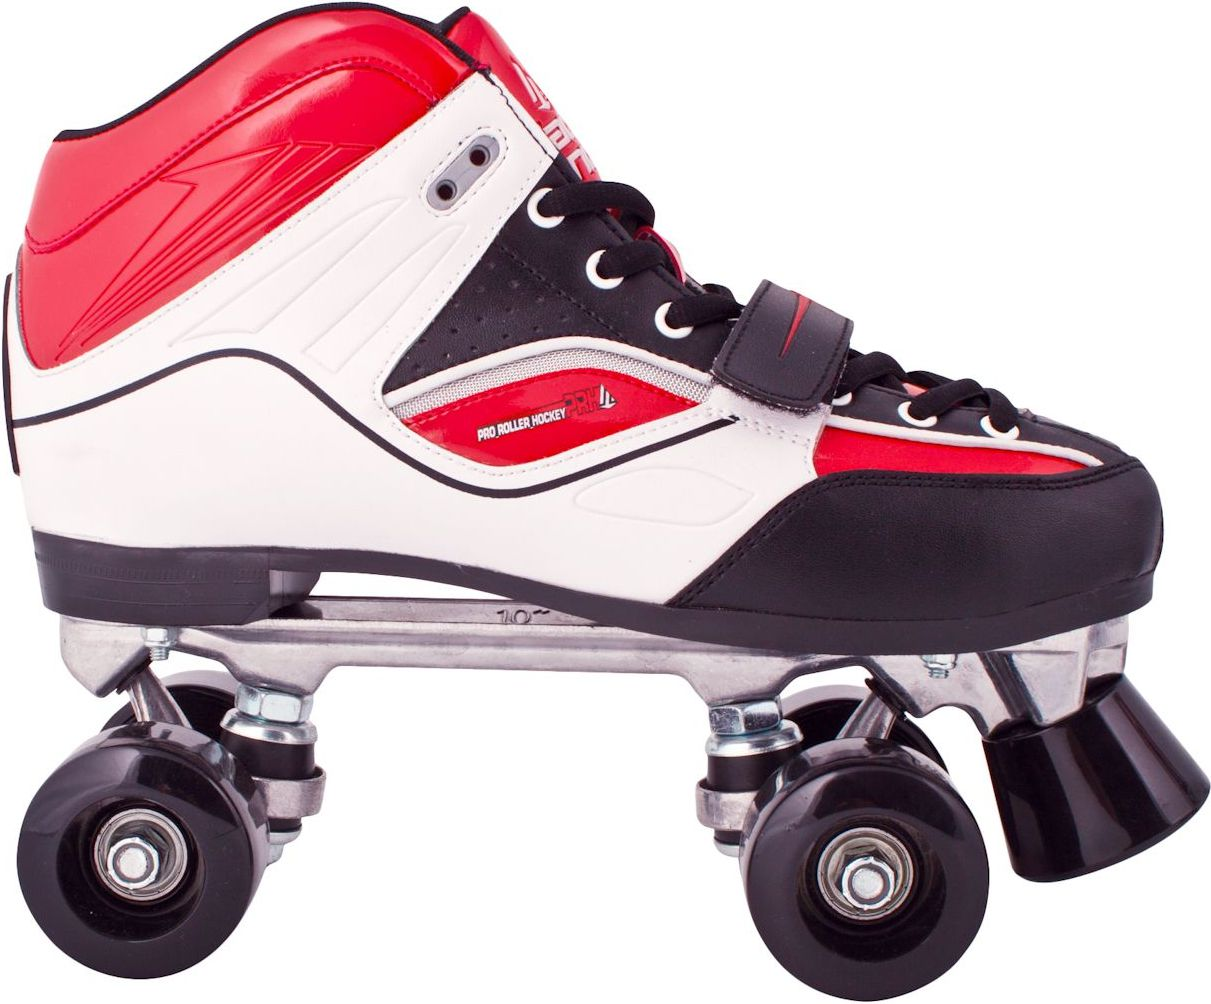 JACK LONDON Wrotki Pro Roller Hockey Senior 231533 rozmiar 37 - WIKR-1012186